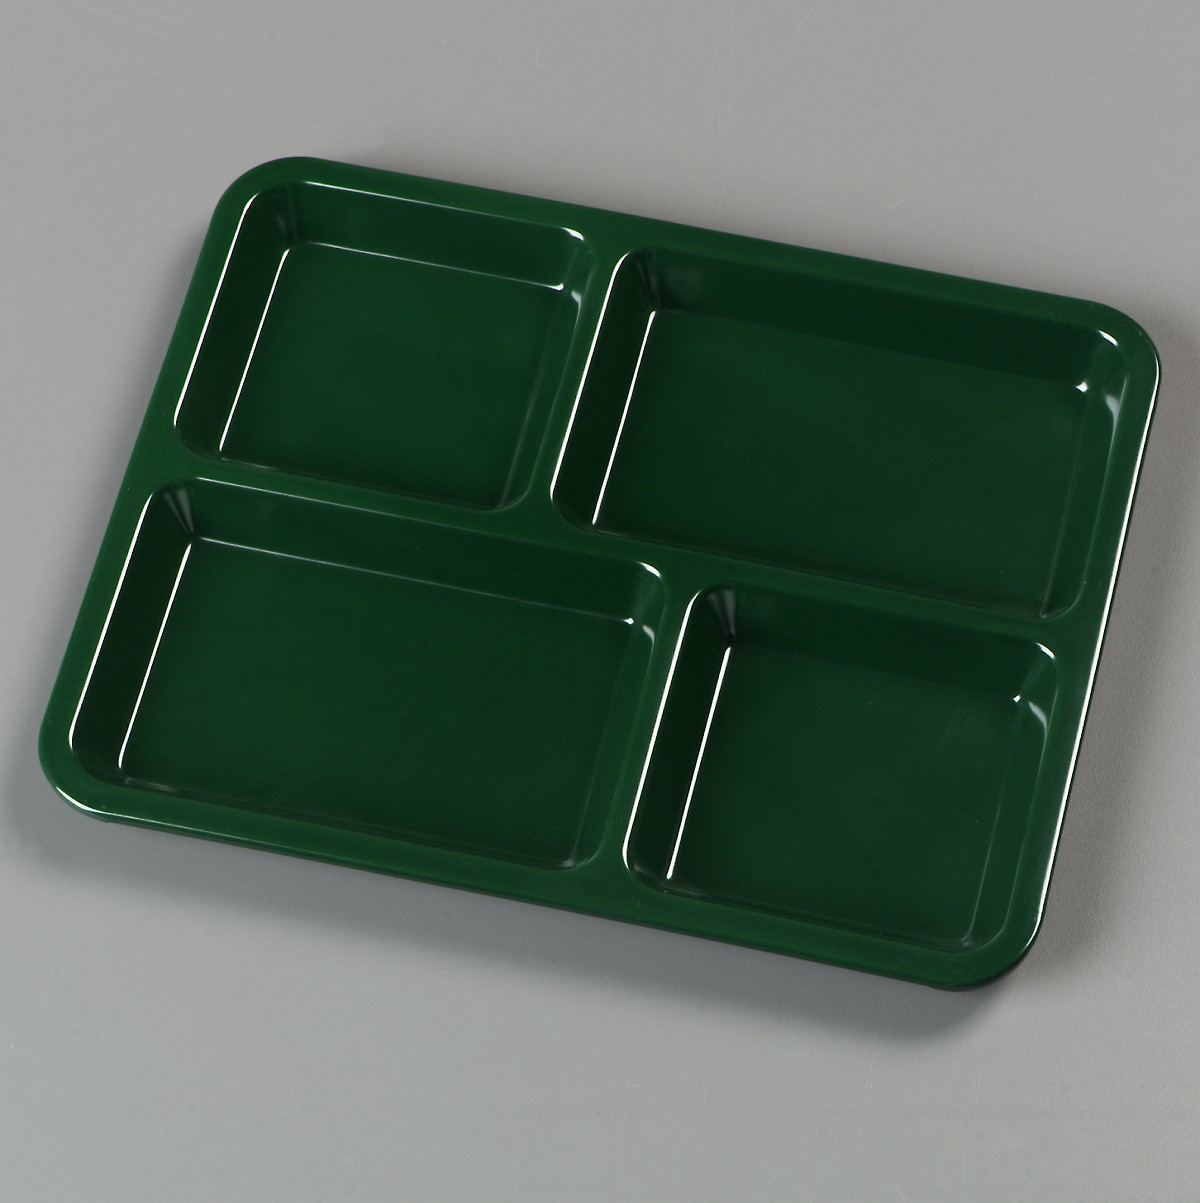 Carlisle KL444 4 Compartment Melamine Tray - 1 doz